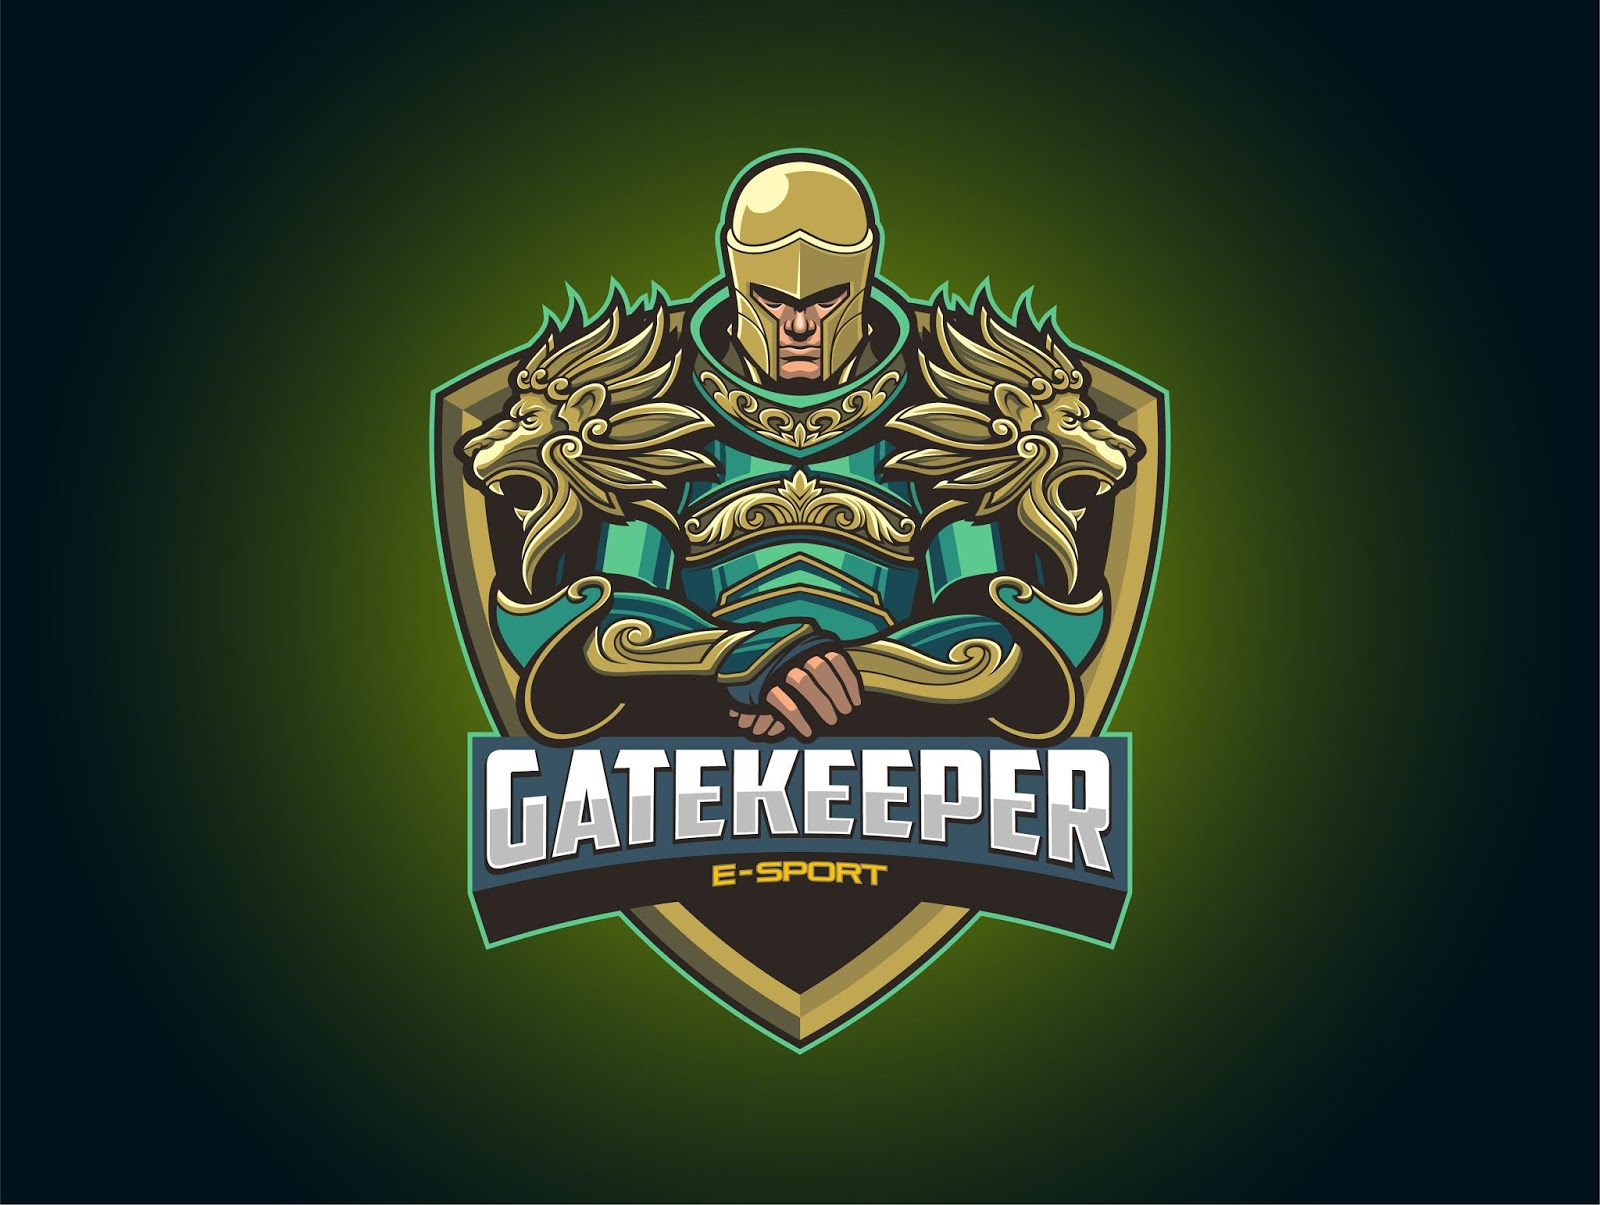 Esport Logo Free Download Vector CDR, AI, EPS and PNG Formats